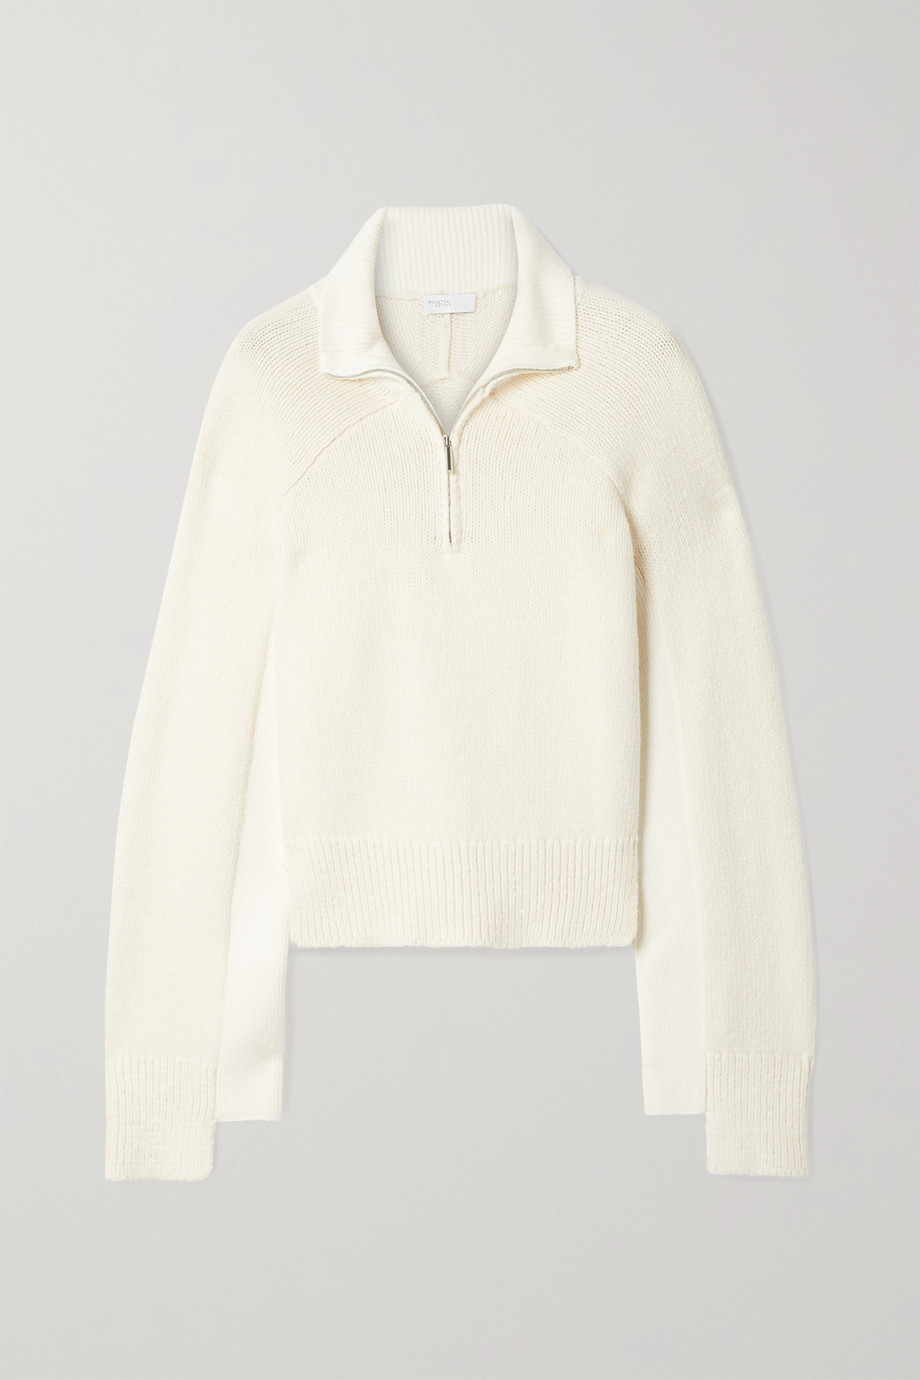 Rosetta Getty Cropped two-tone cotton-blend sweater